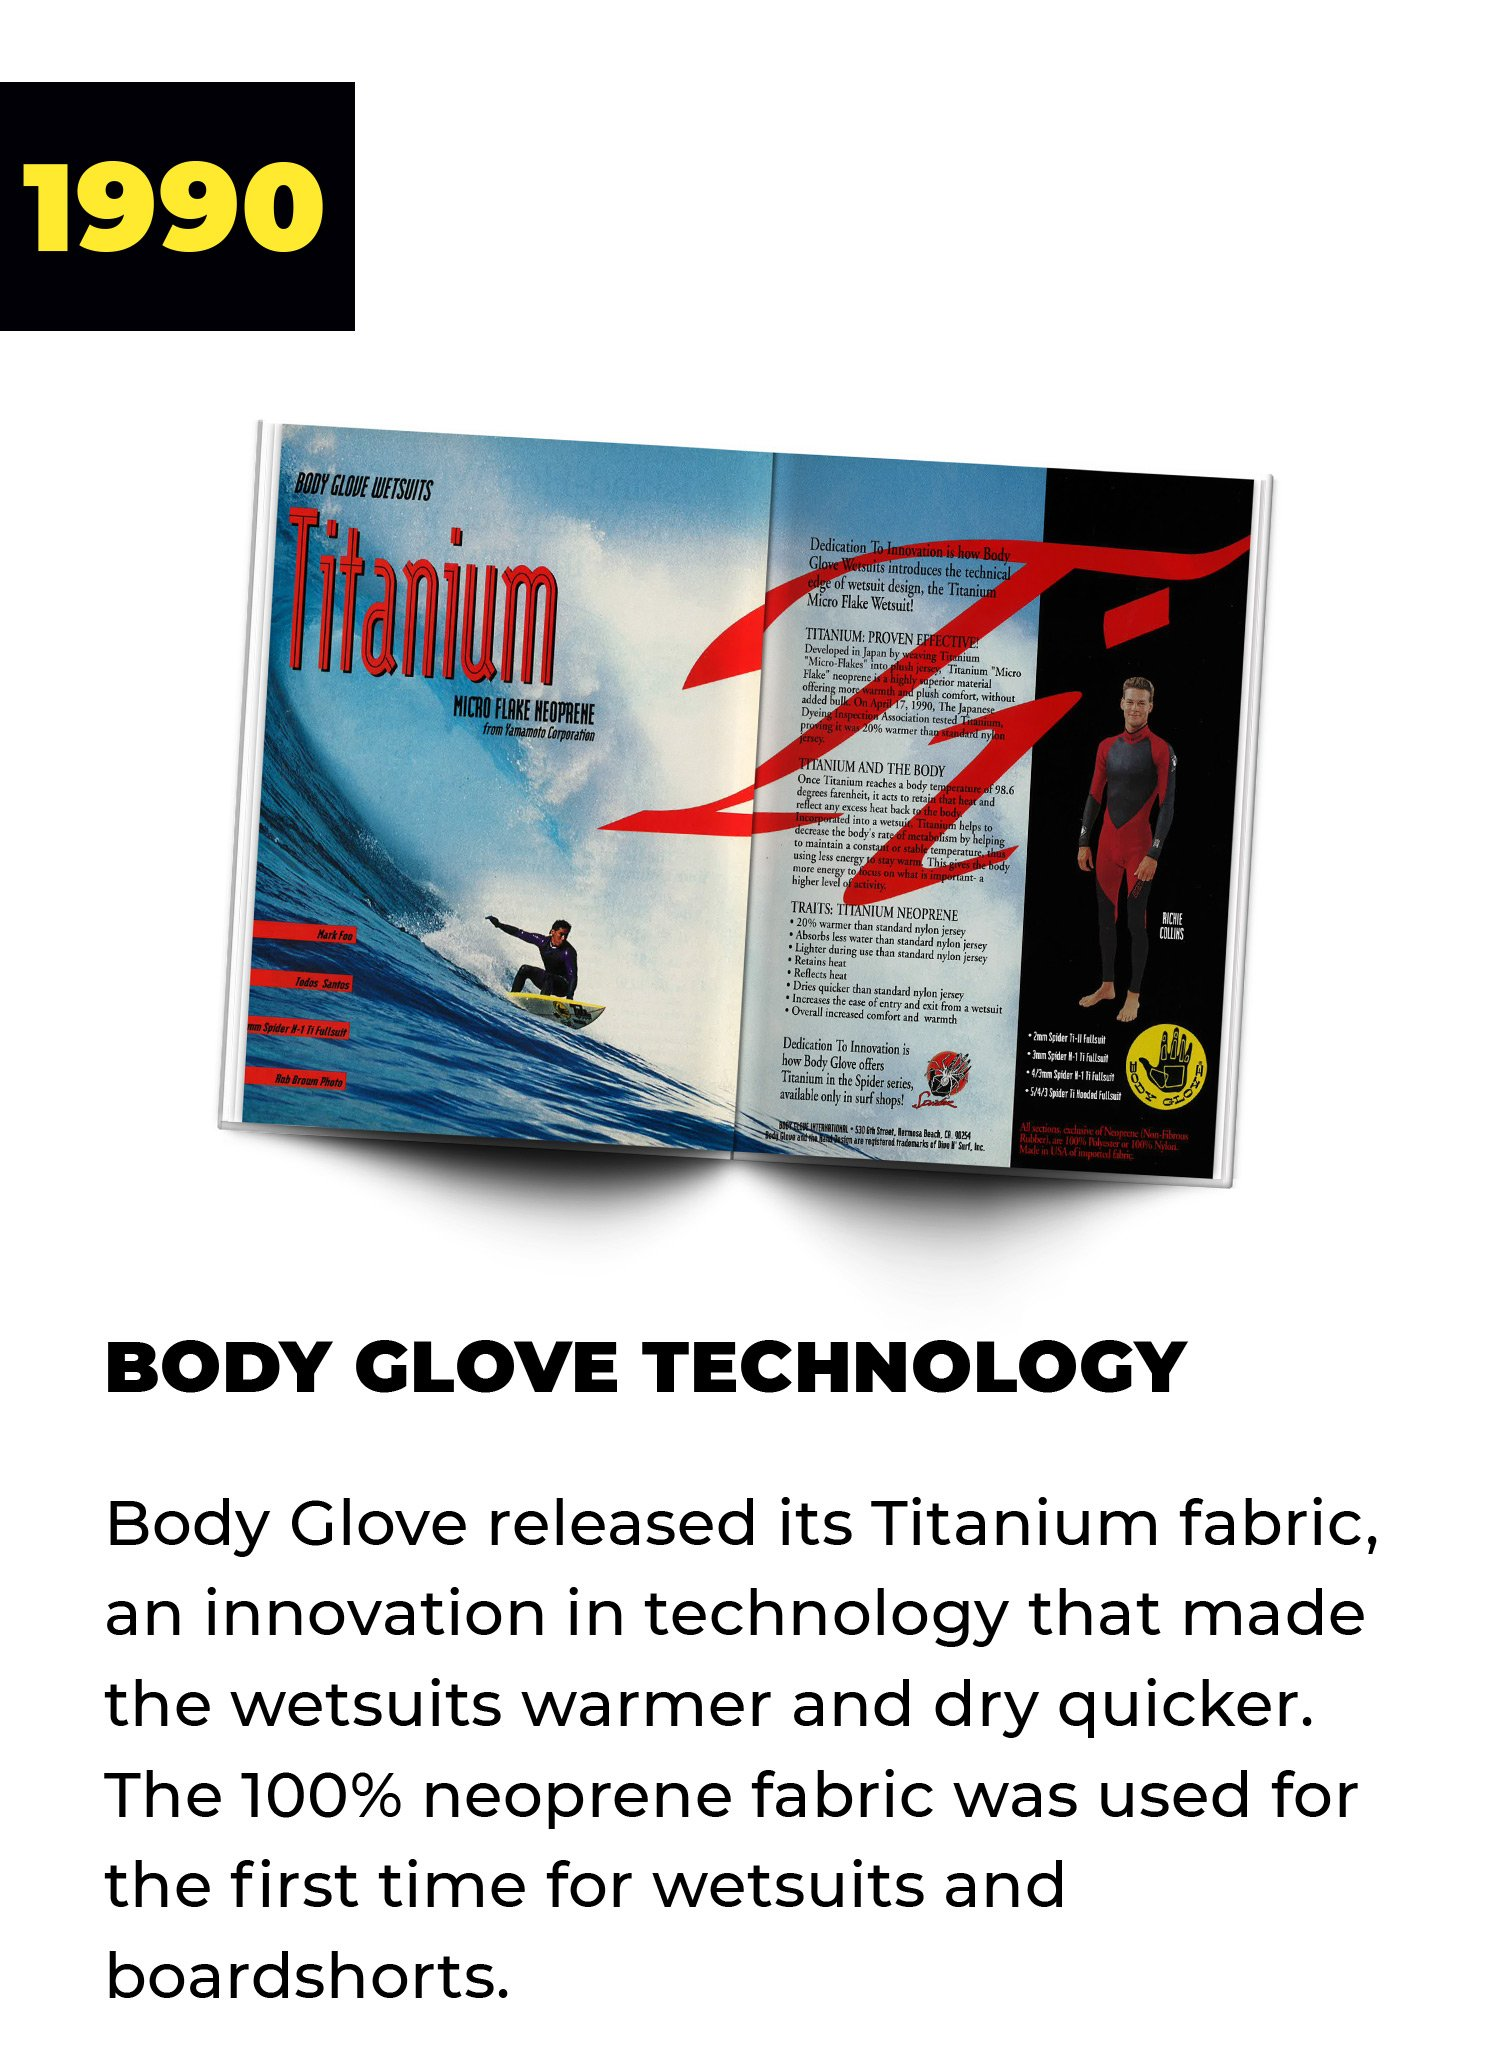 1990 | Body Glove Technology | Body Glove released its Titanium fabric, an innovation in technology that made the wetsuits warmer and dry quicker. The 100% neoprene fabric was used for the first time for wetsuits and boardshorts.